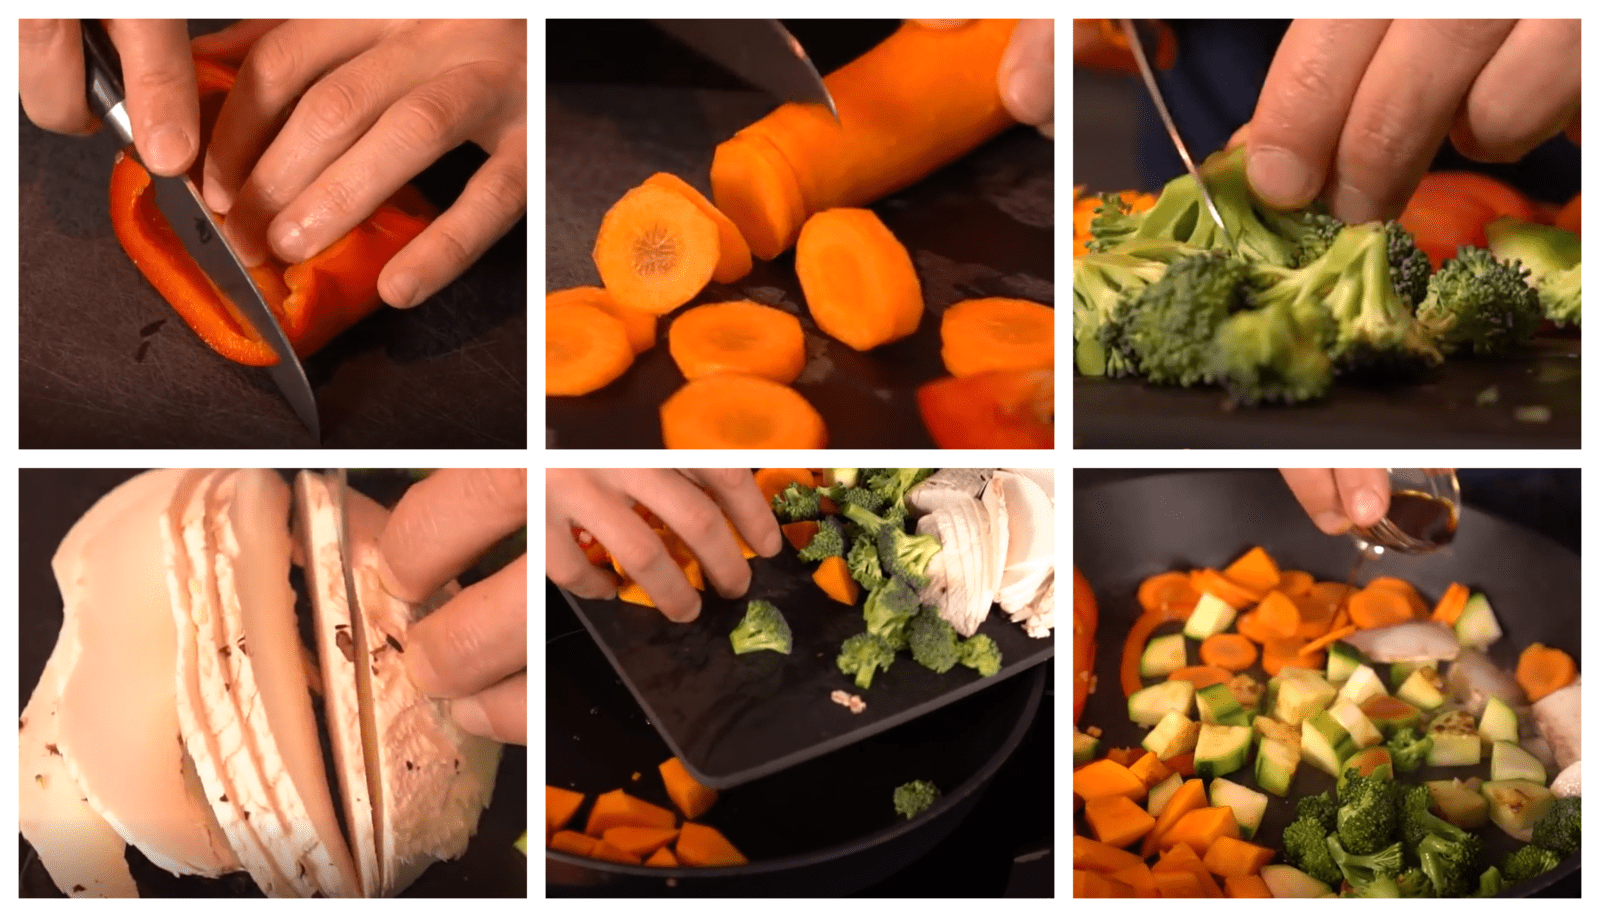 Cleaning, and cutting vegetables